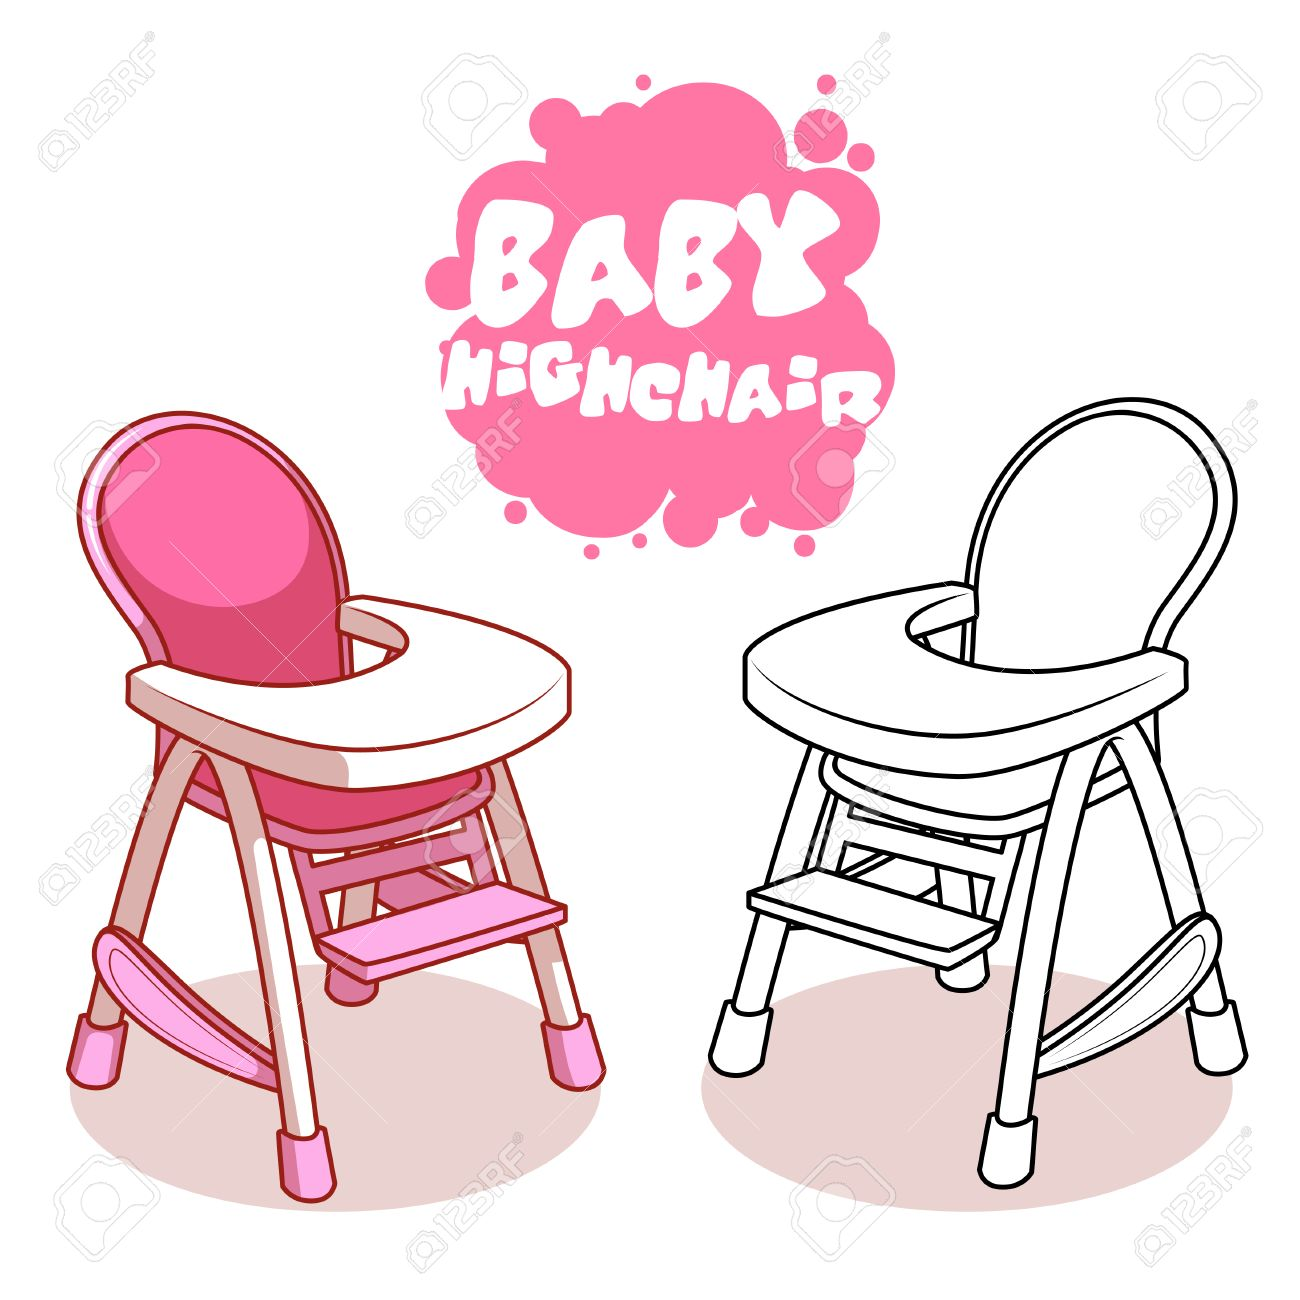 Baby Highchair isolated on white background. Vector clip.